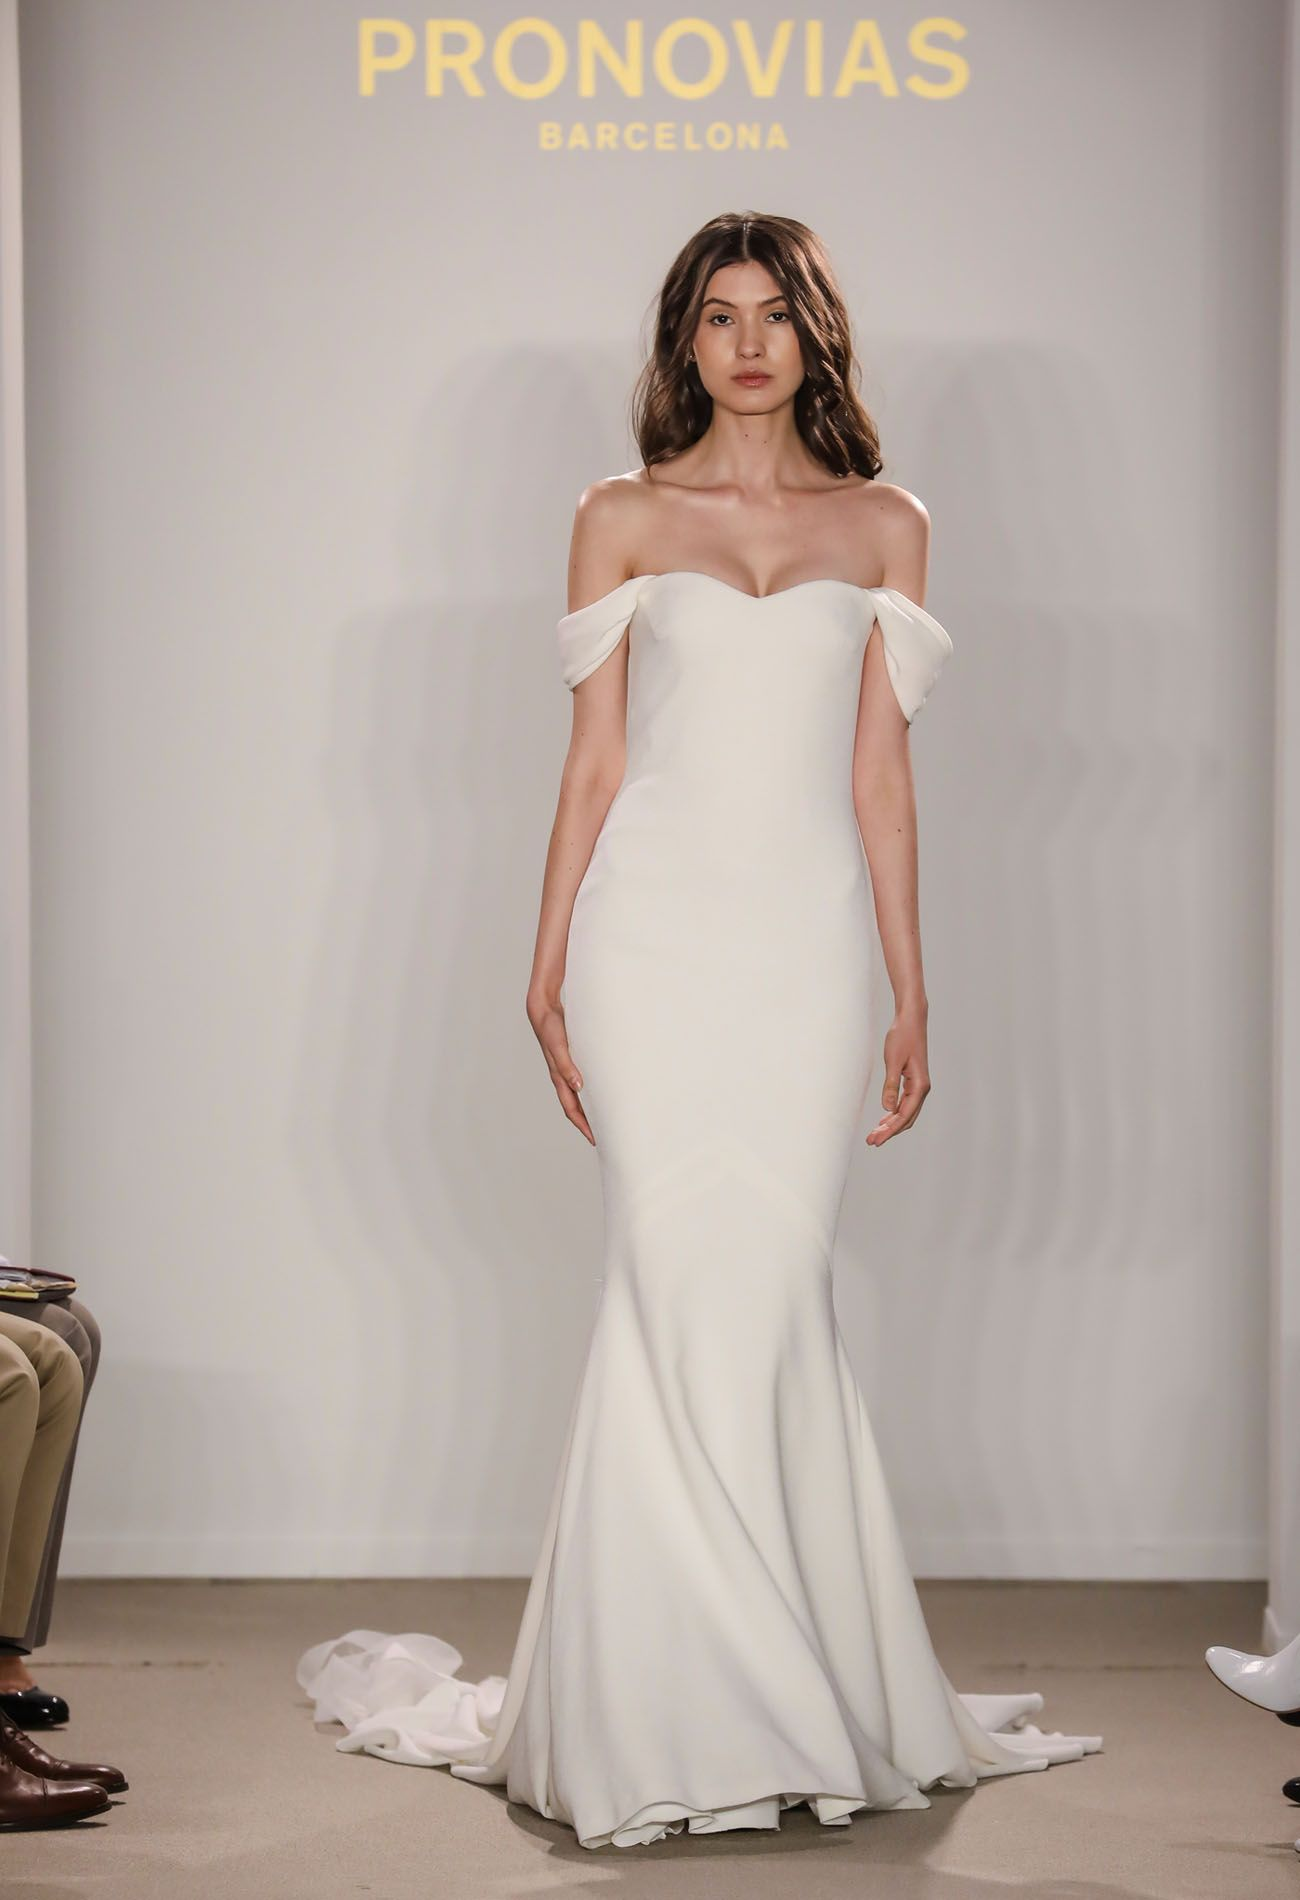 Pronovias presents the stunning preview collections tie it up